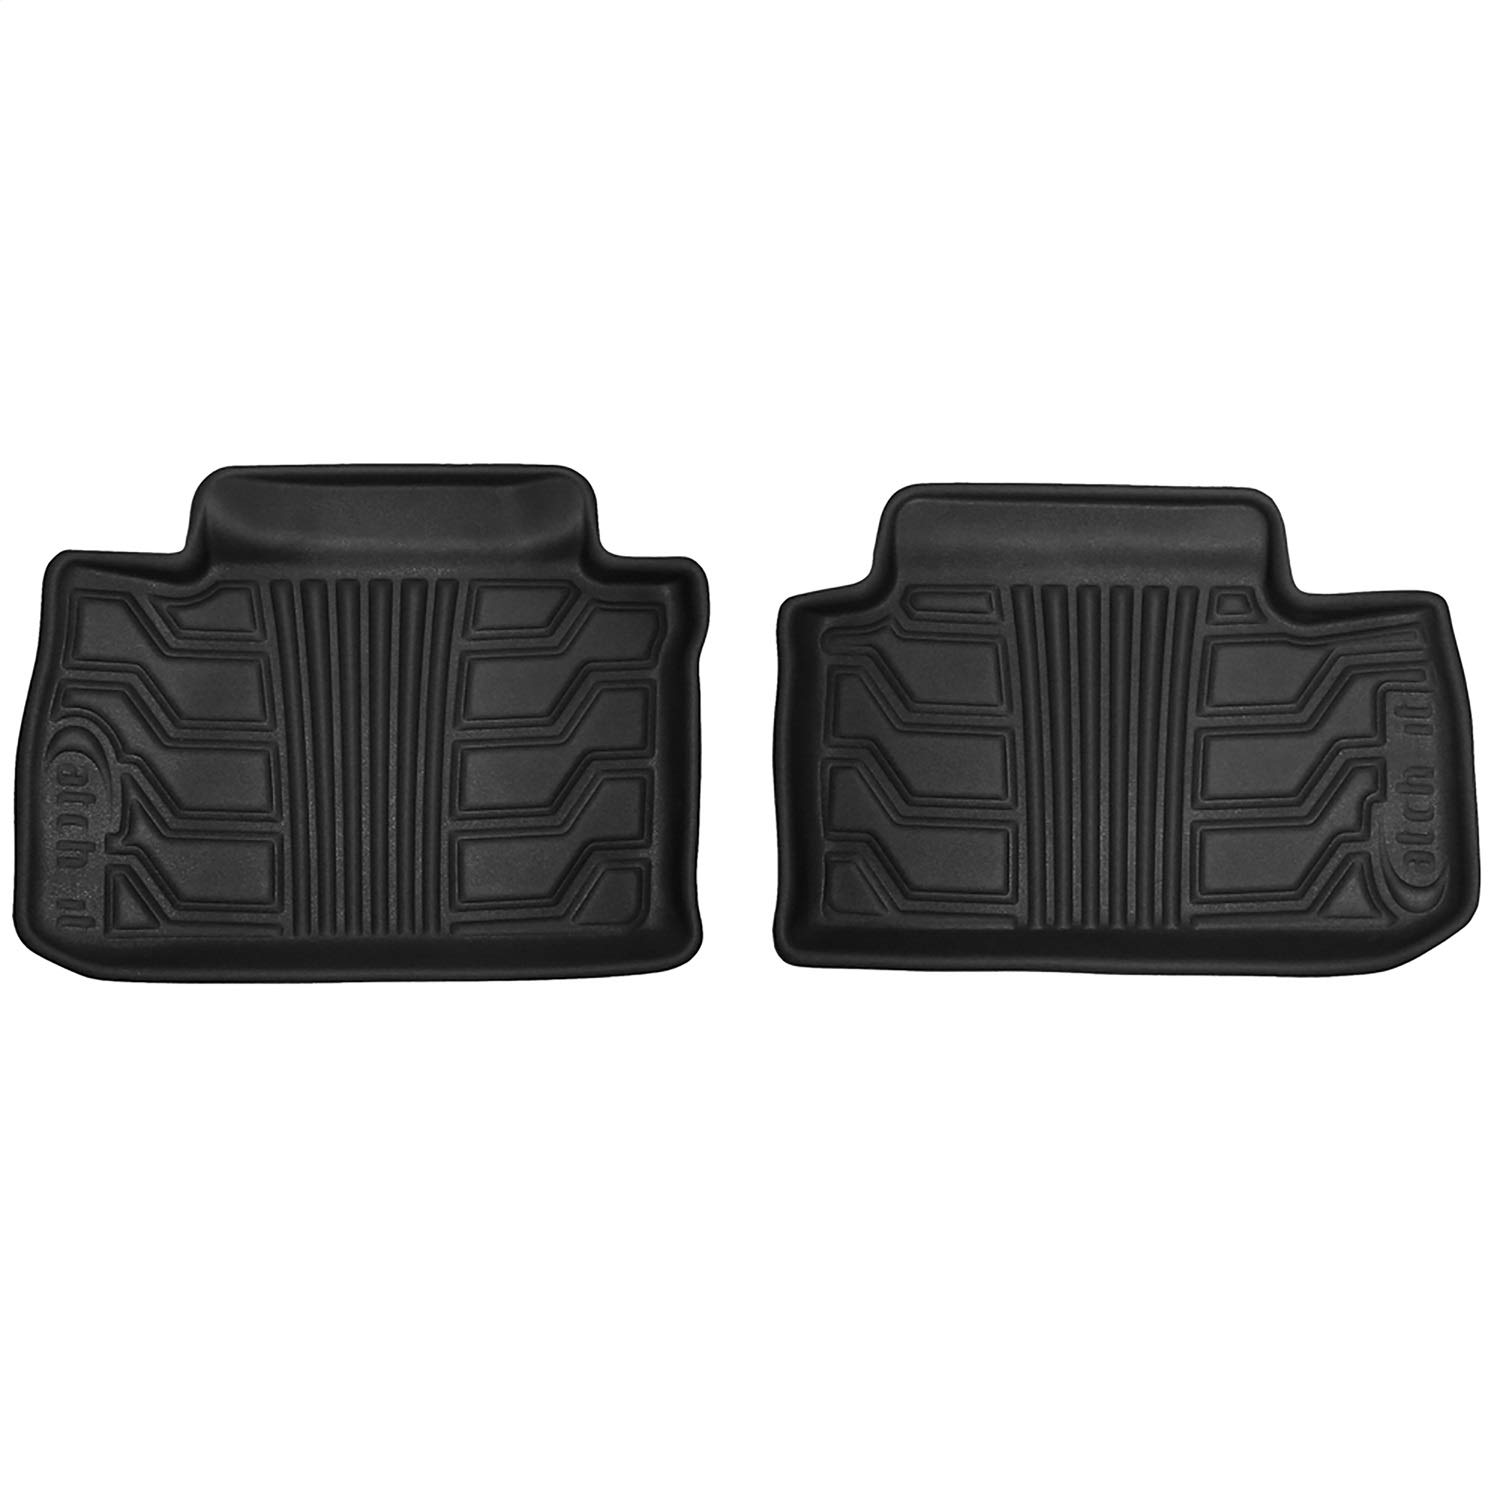 Lund 383144-B Catch-It Black Vinyl Rear Floormats for 2018 Jeep Wrangler JL 4-Door